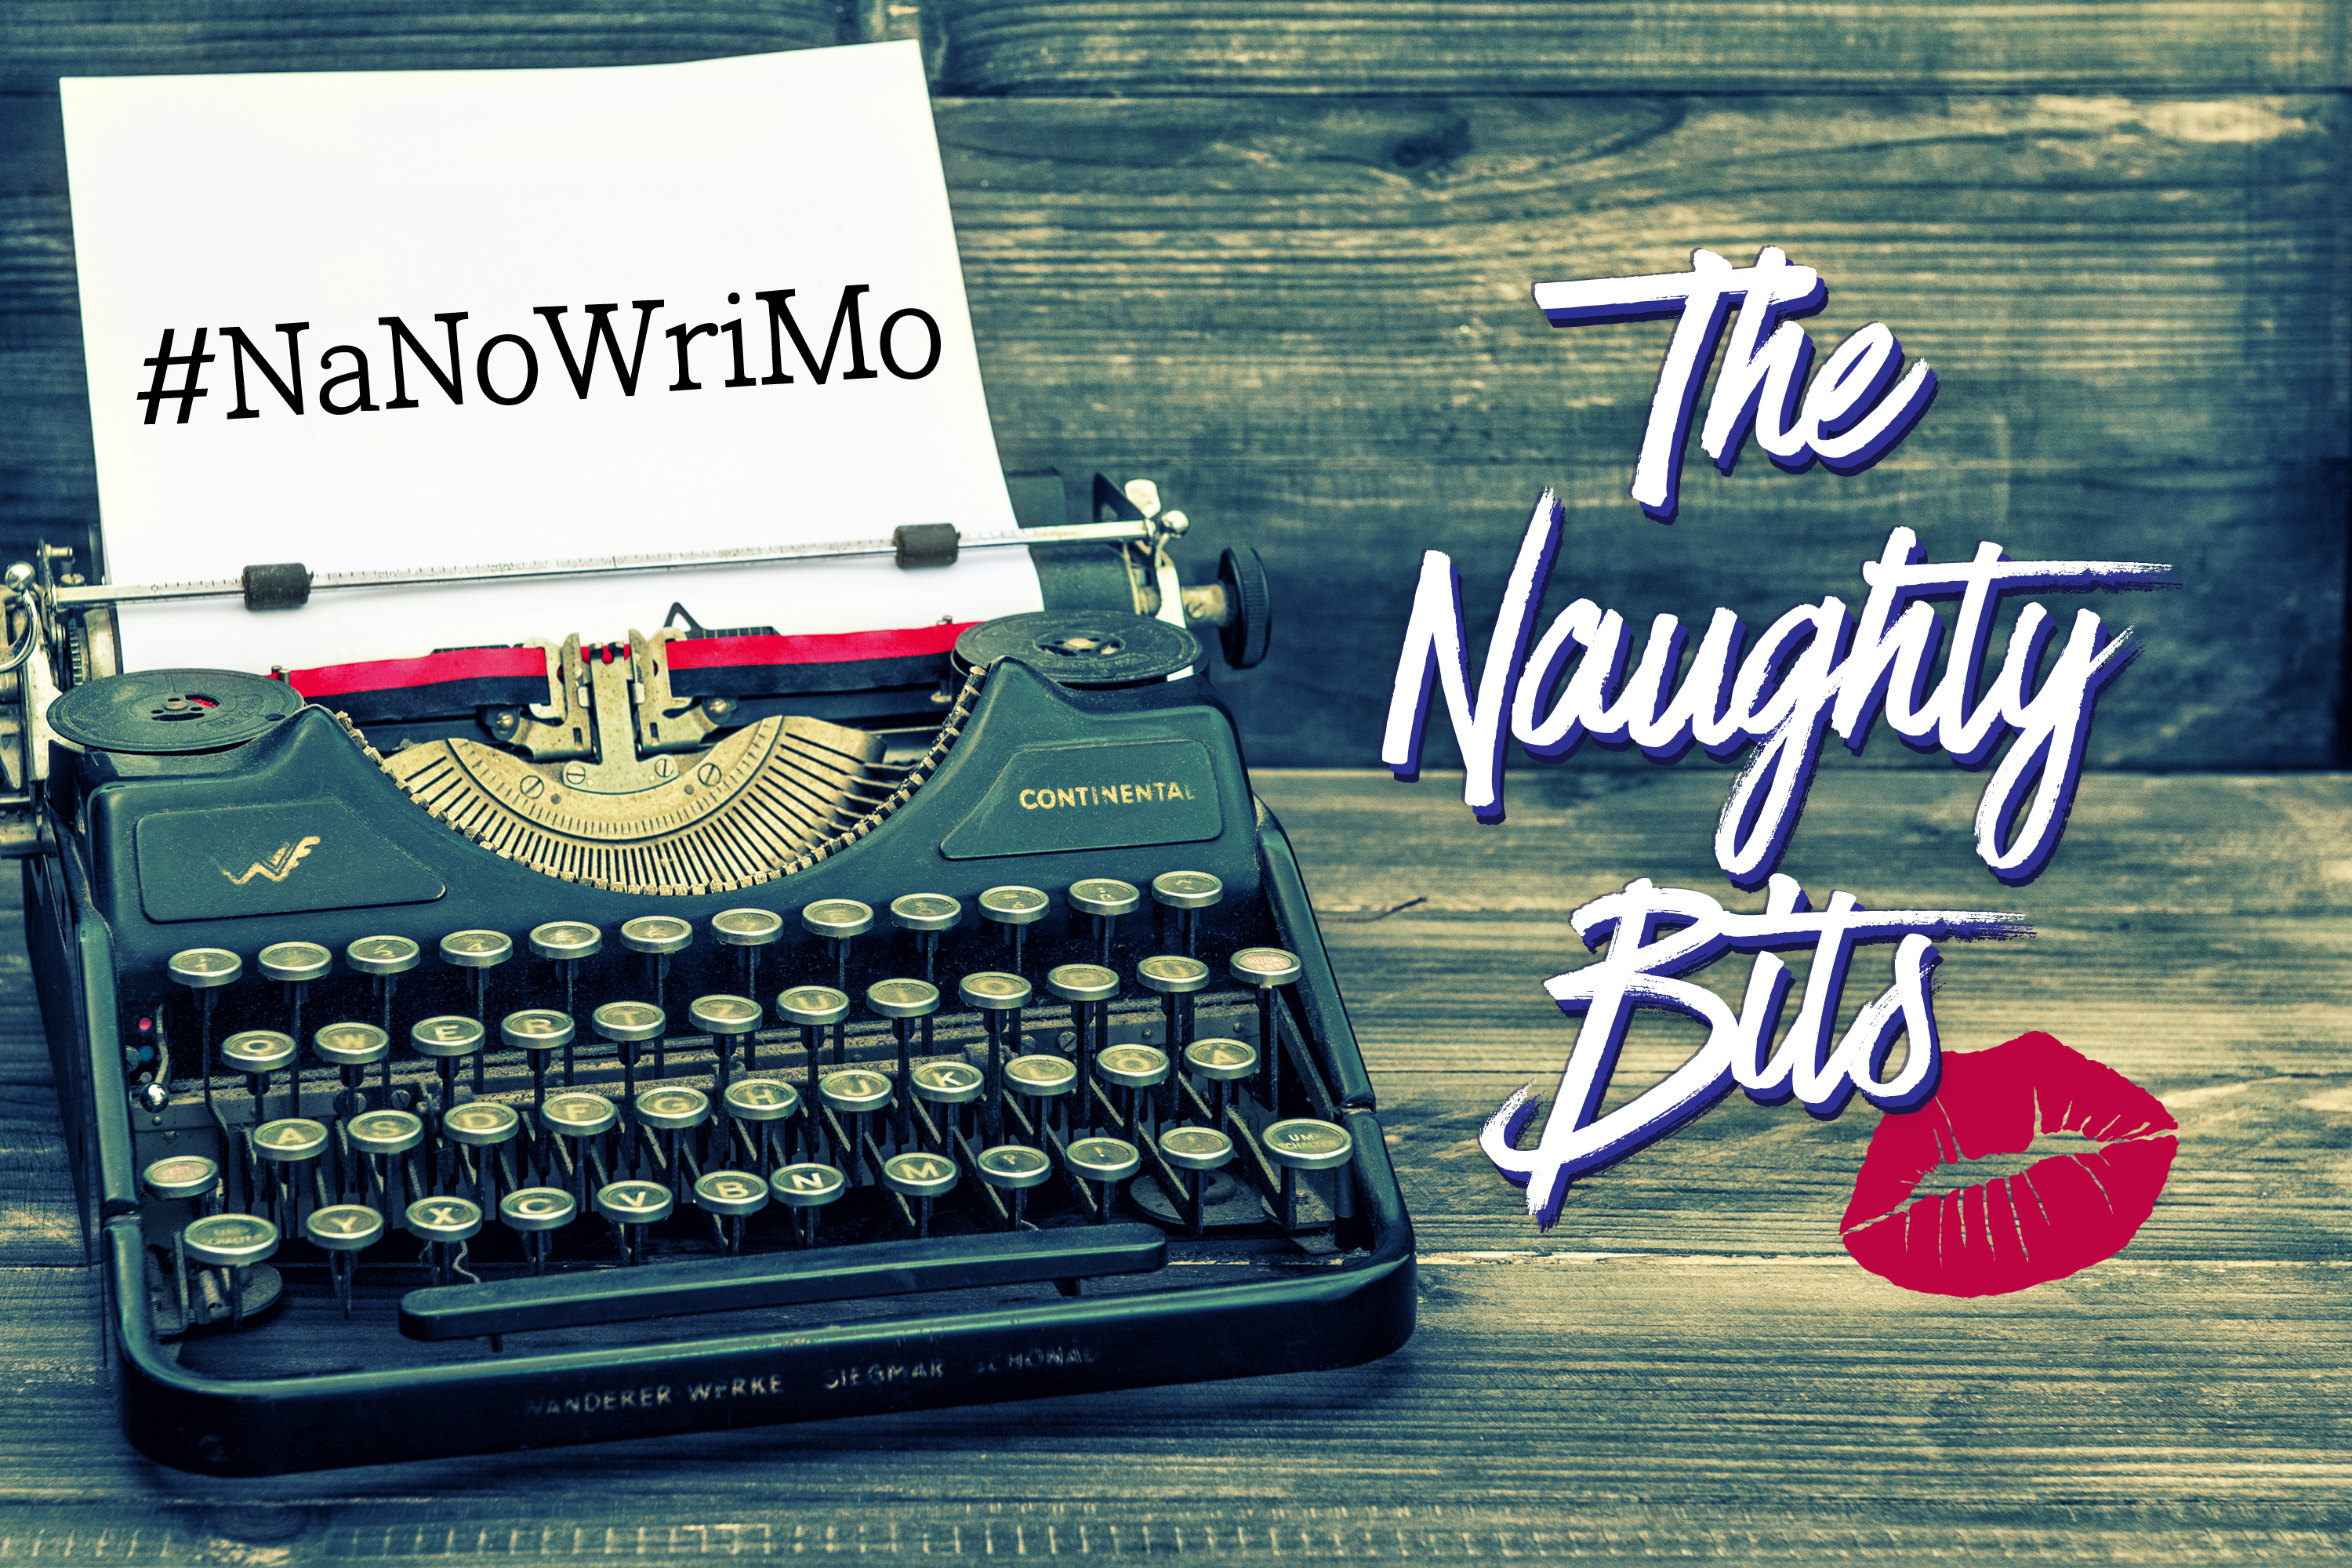 http nanowrimo.org registration verify key tn9k6qwbedzqaf0yk64